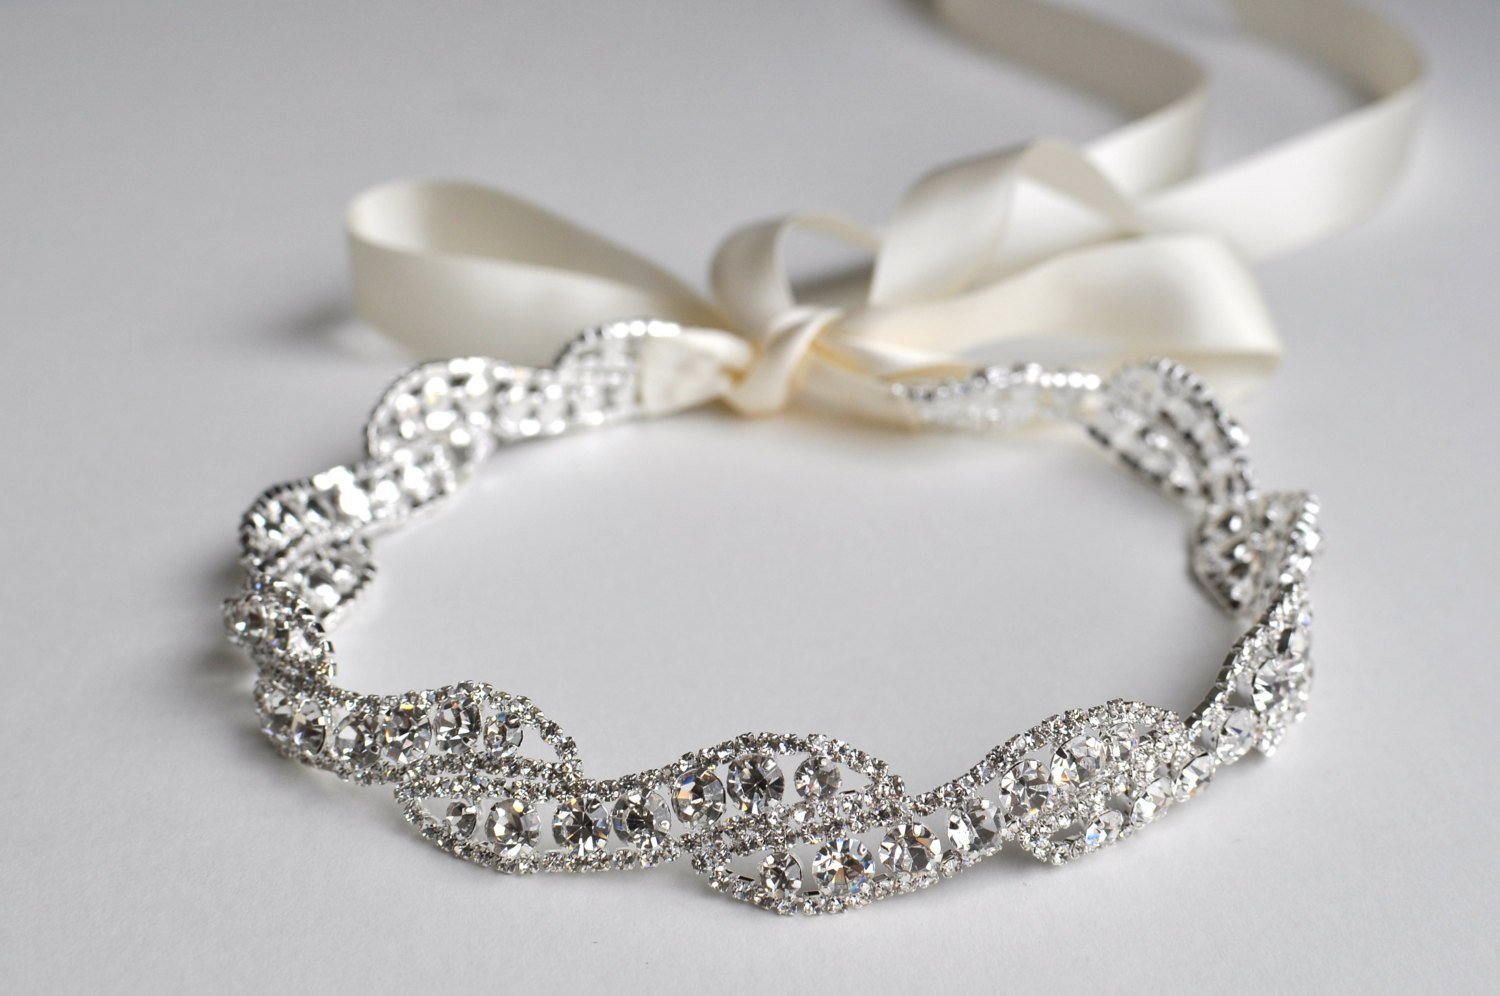 Bridal Headband with crystals and ribbon